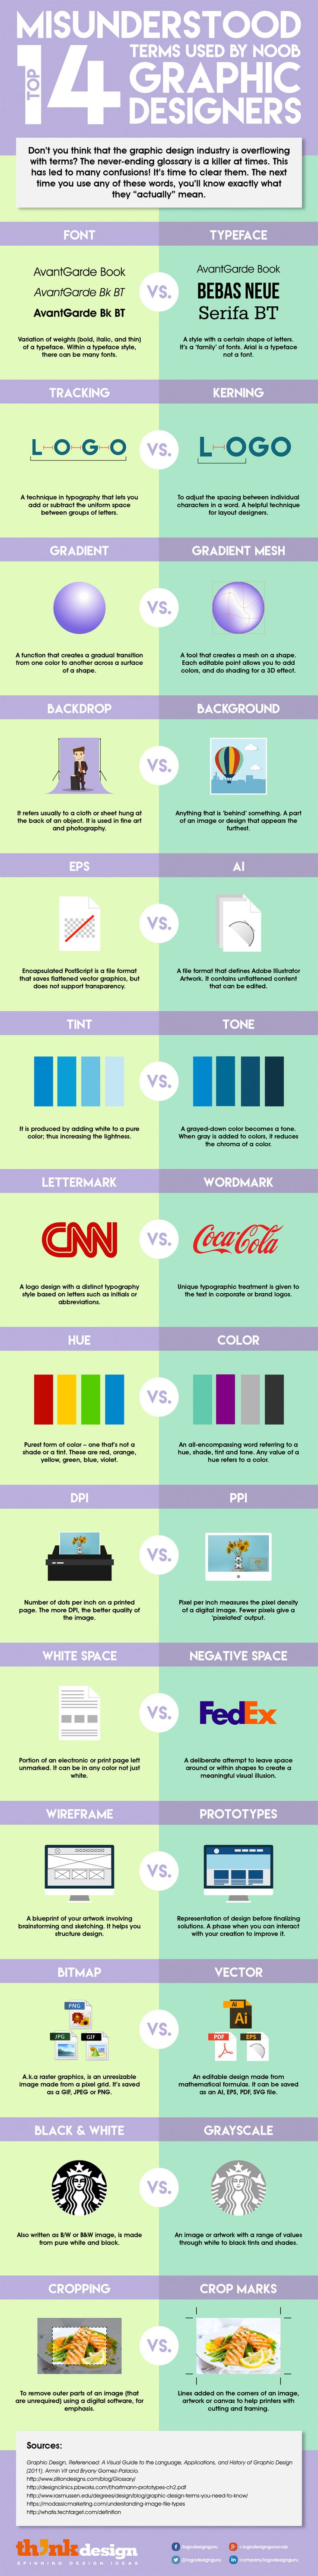 14 Graphic Design Terms Commonly Misused By Novice Designers…